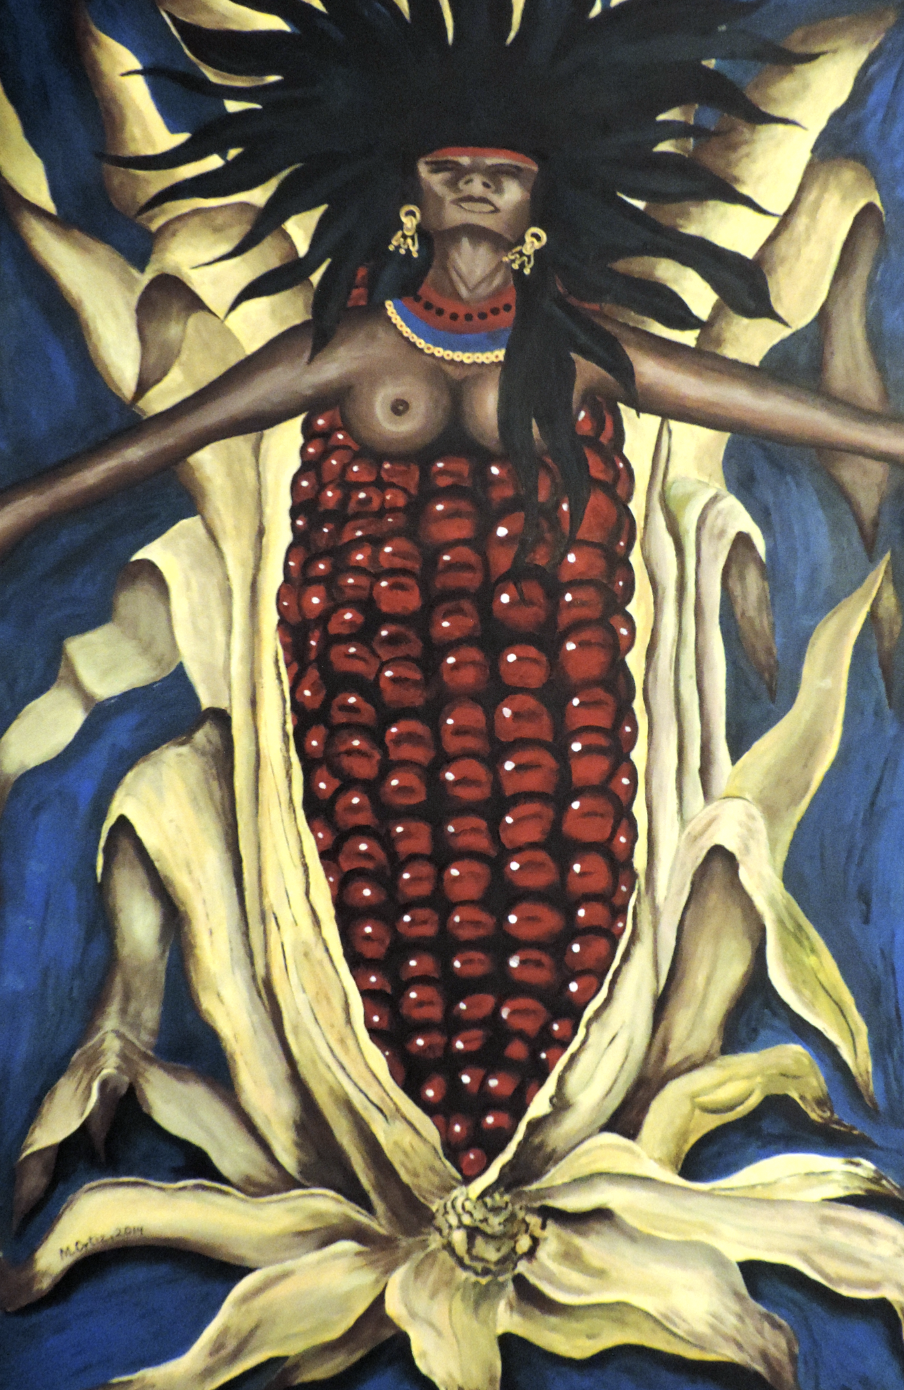 Maize is entwined in the history and traditions of Mexico. Artwork by Marcelo Ortiz